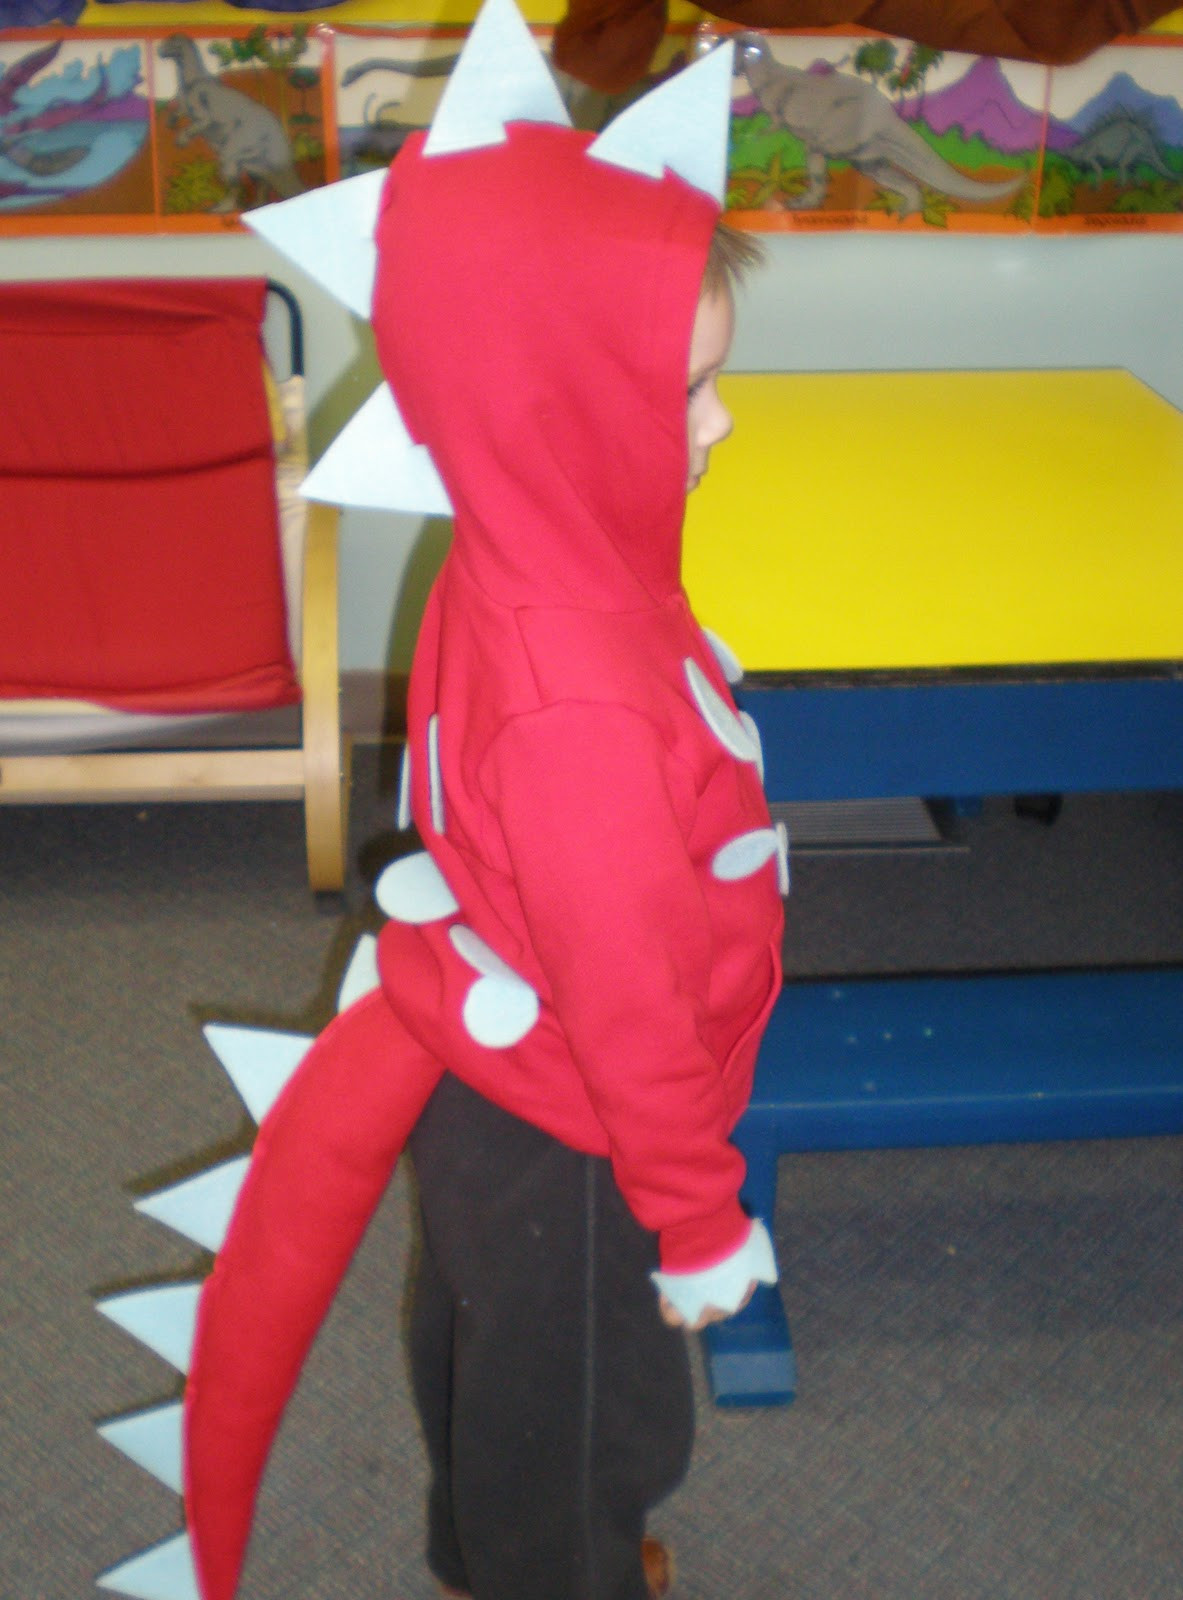 Best ideas about DIY Dinosaur Costume Toddler . Save or Pin Tutorials Crafts Projects Kids Children Handmade Easy Now.